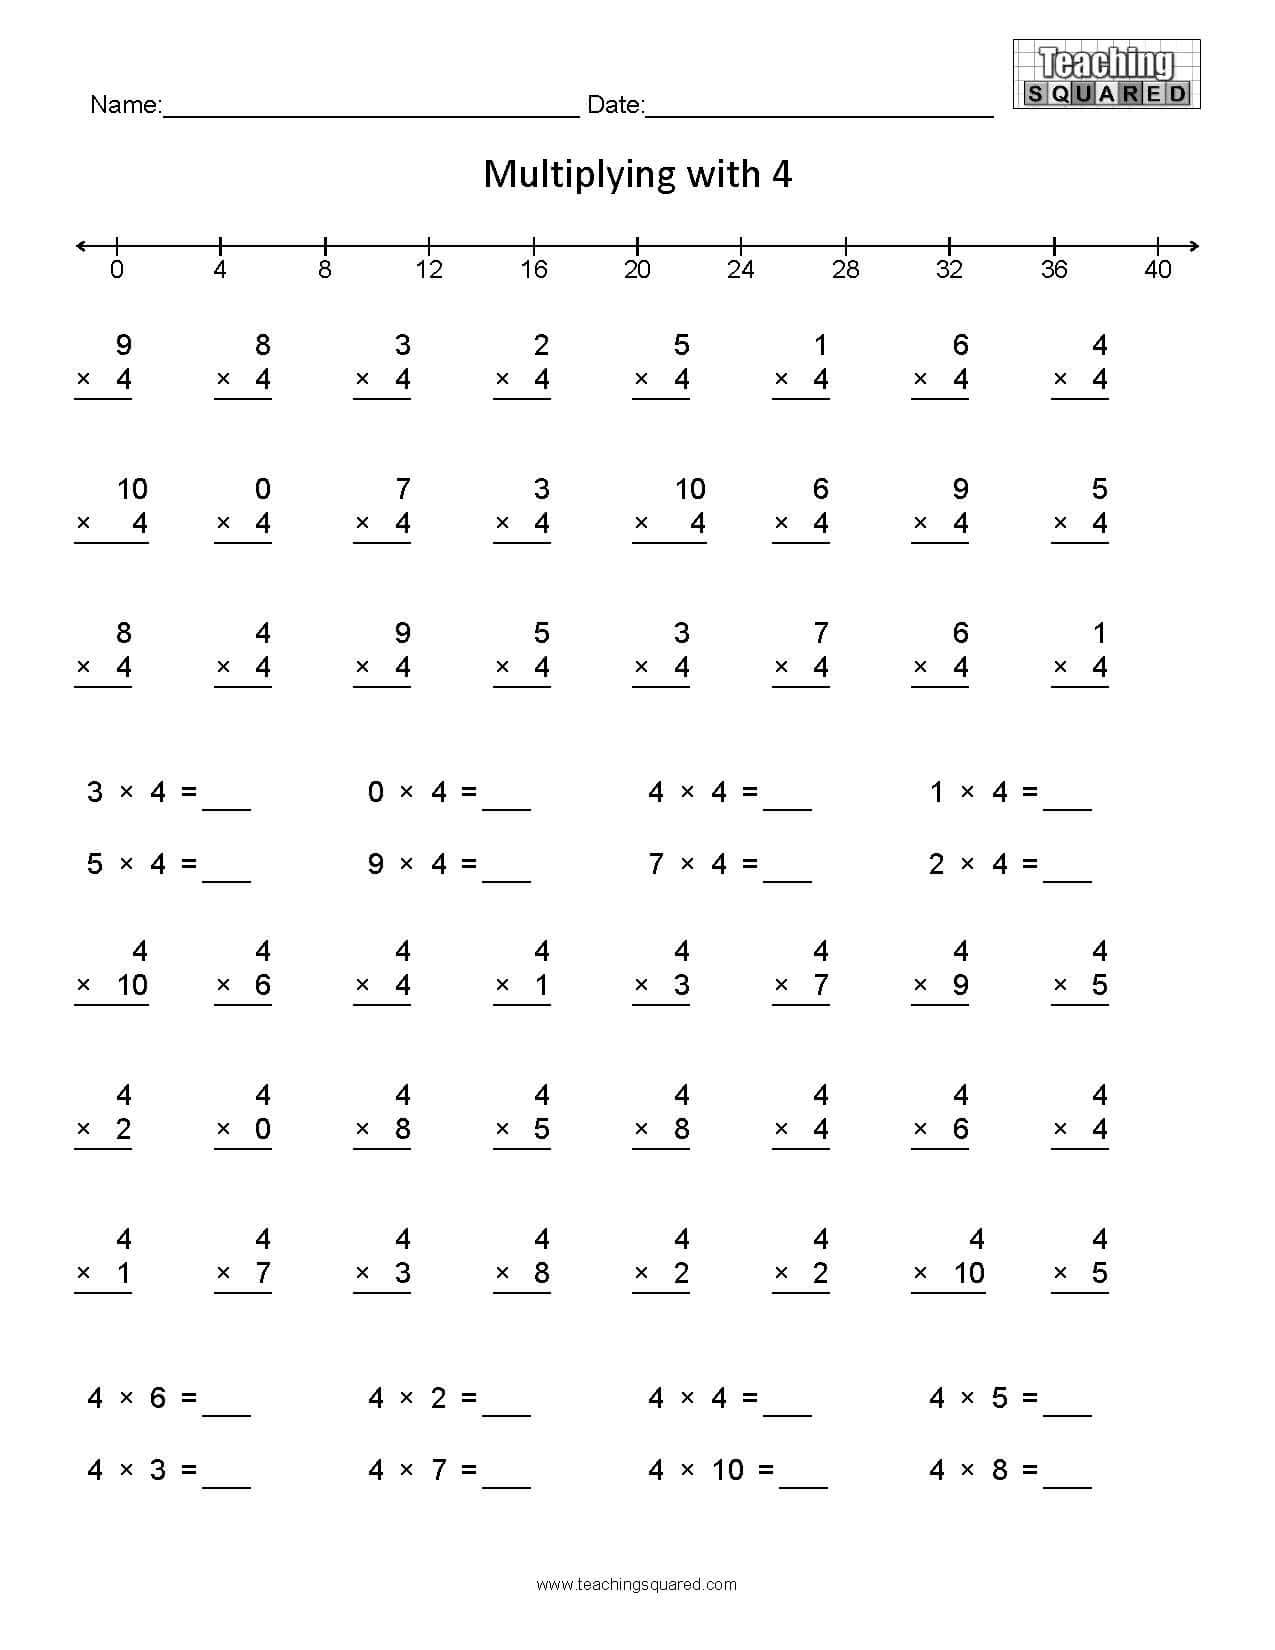 Learning Multiplication- Multiplying4 - Teaching Squared intended for Connect 4 Multiplication Printable